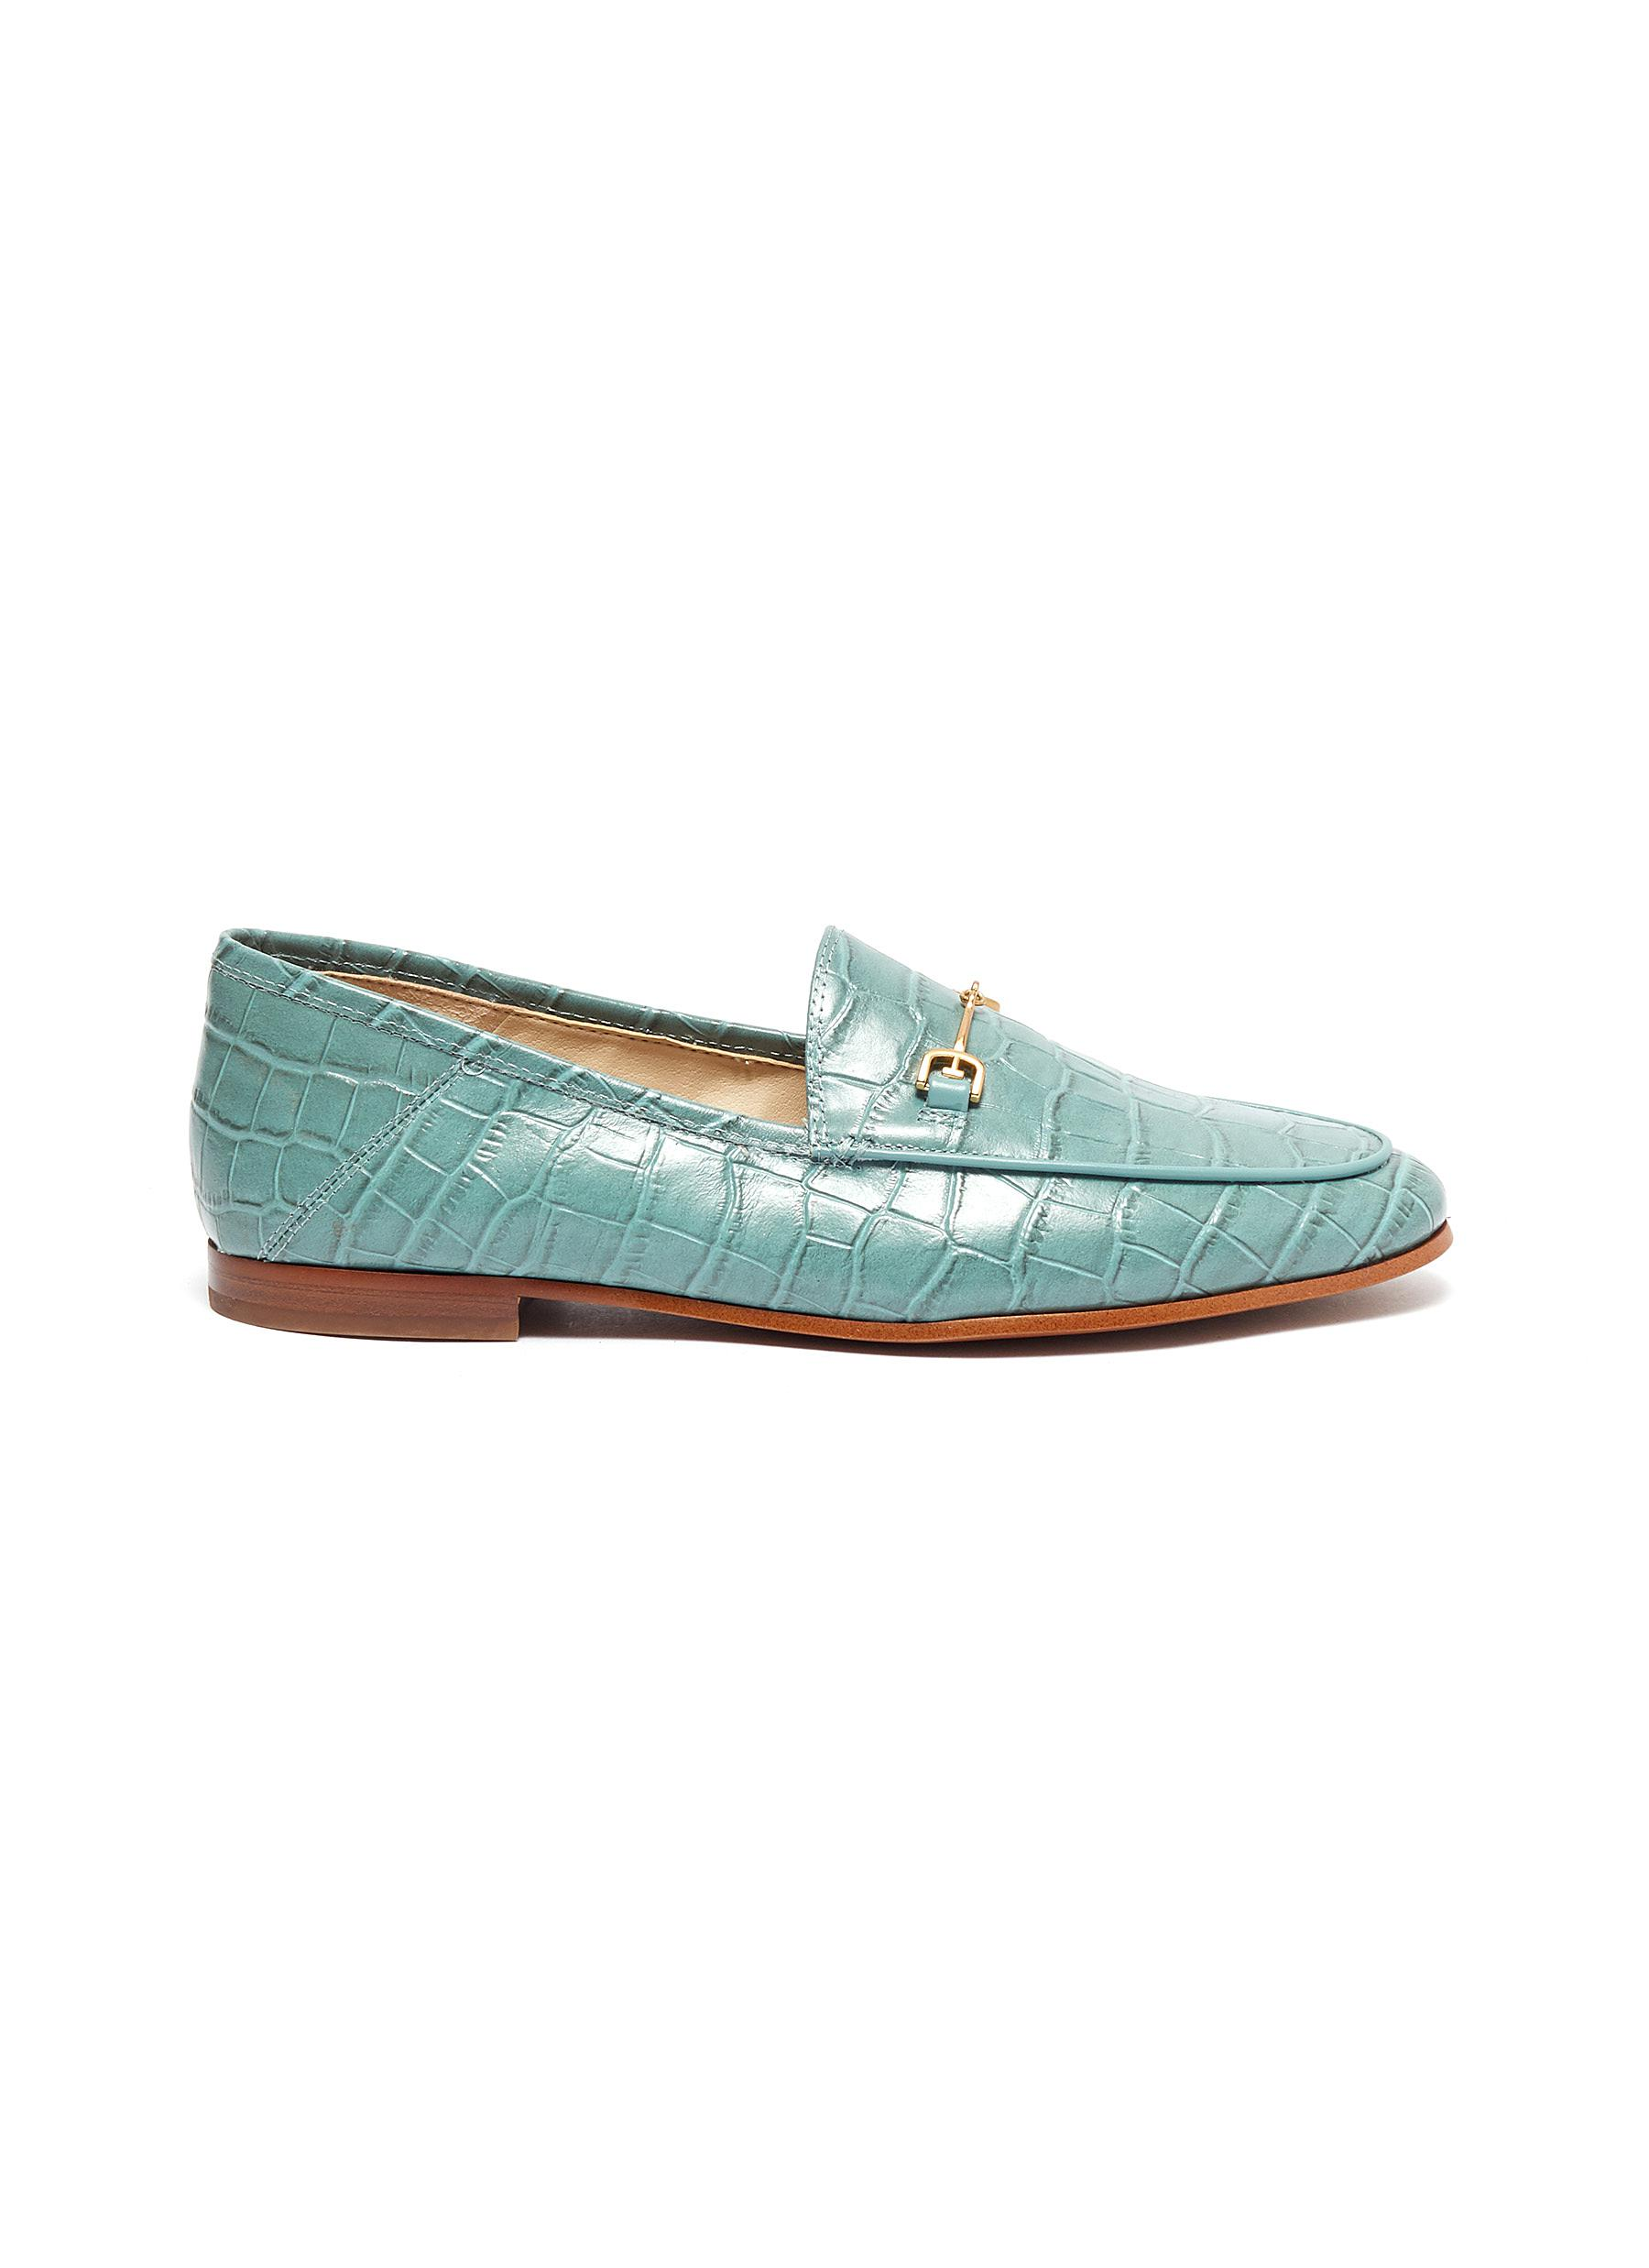 Sam Edelman Flats Loraine croc embossed leather step-in loafers